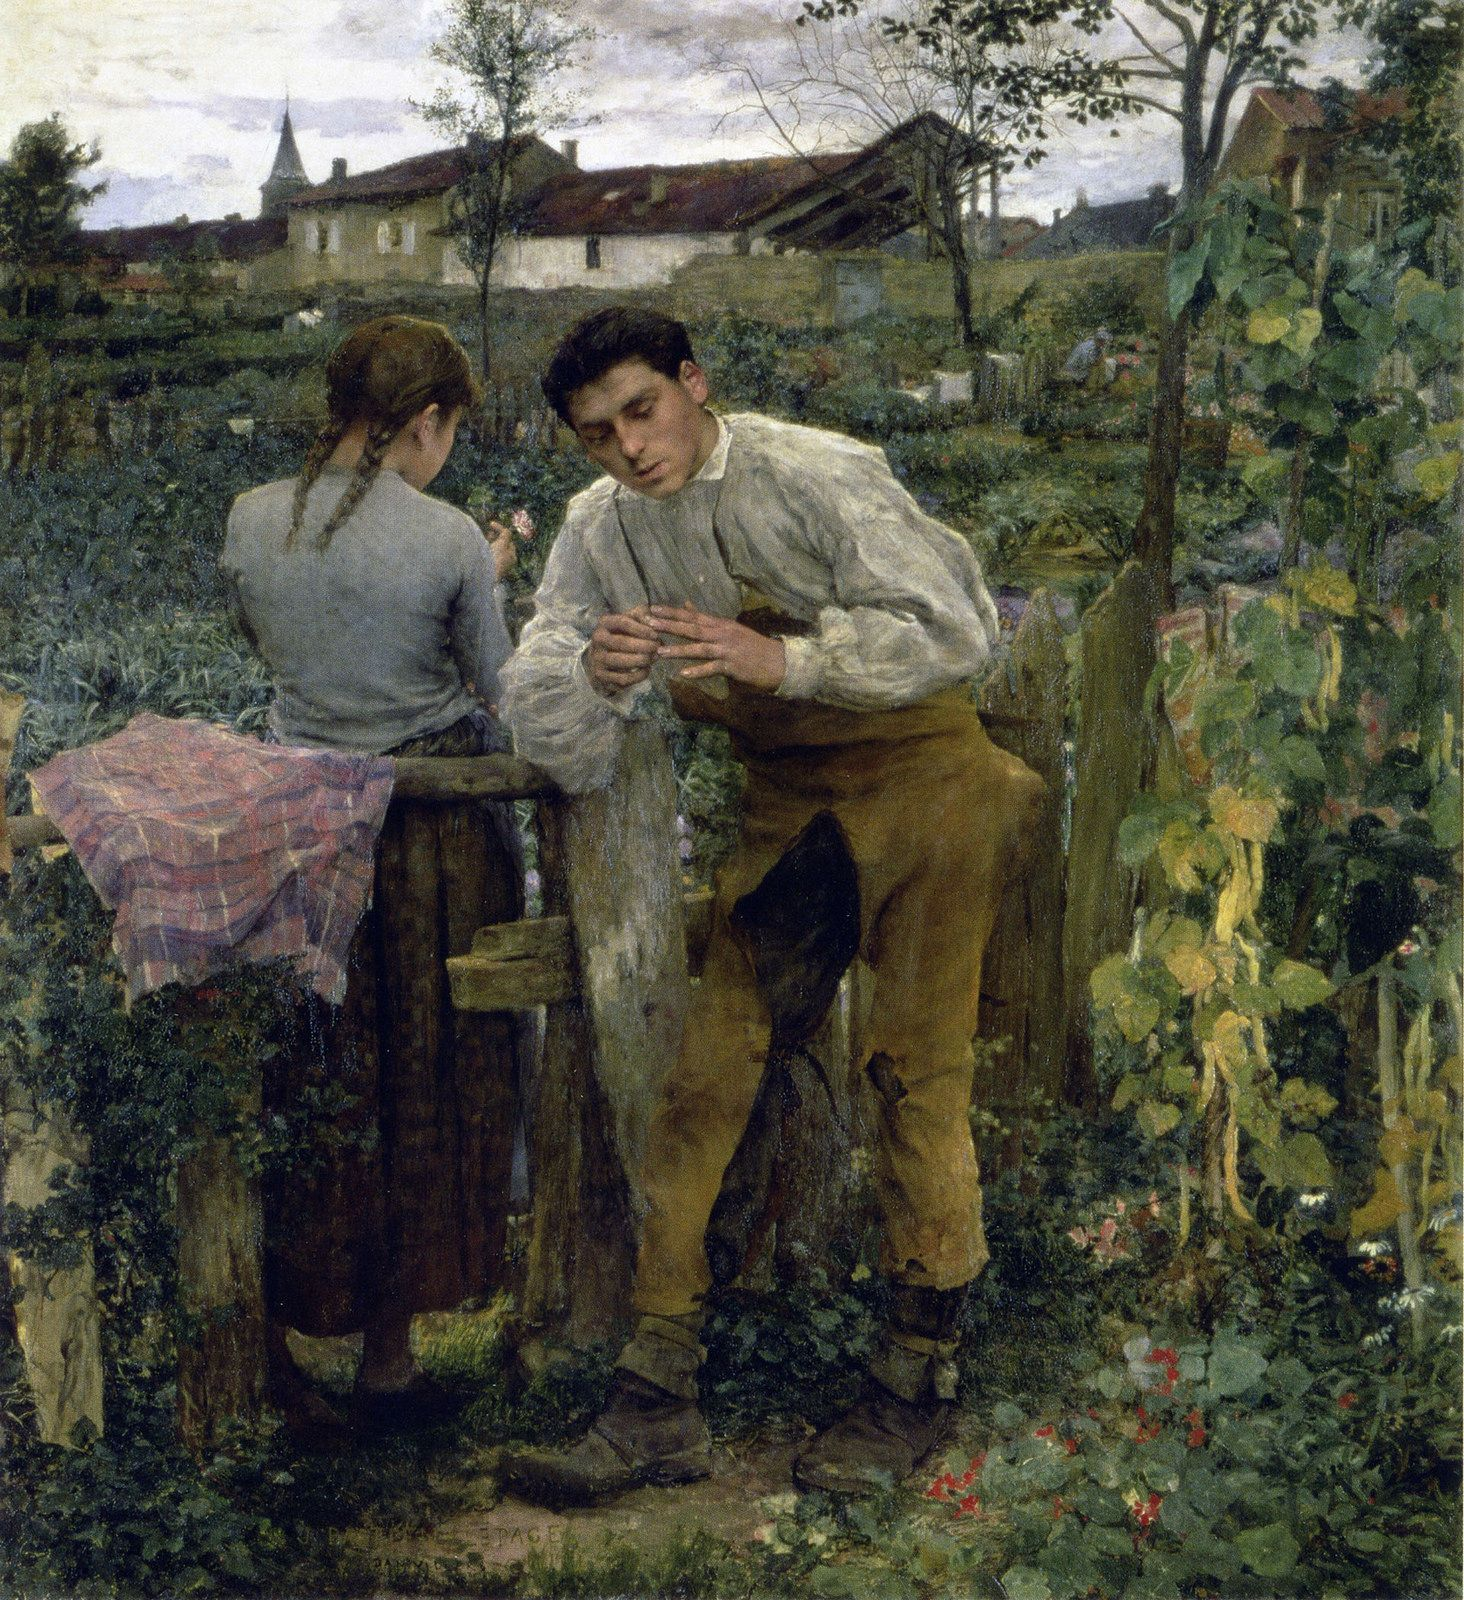 Jules Bastien-Lepage - Rural Love [1883] | Flickr - Photo Sharing!